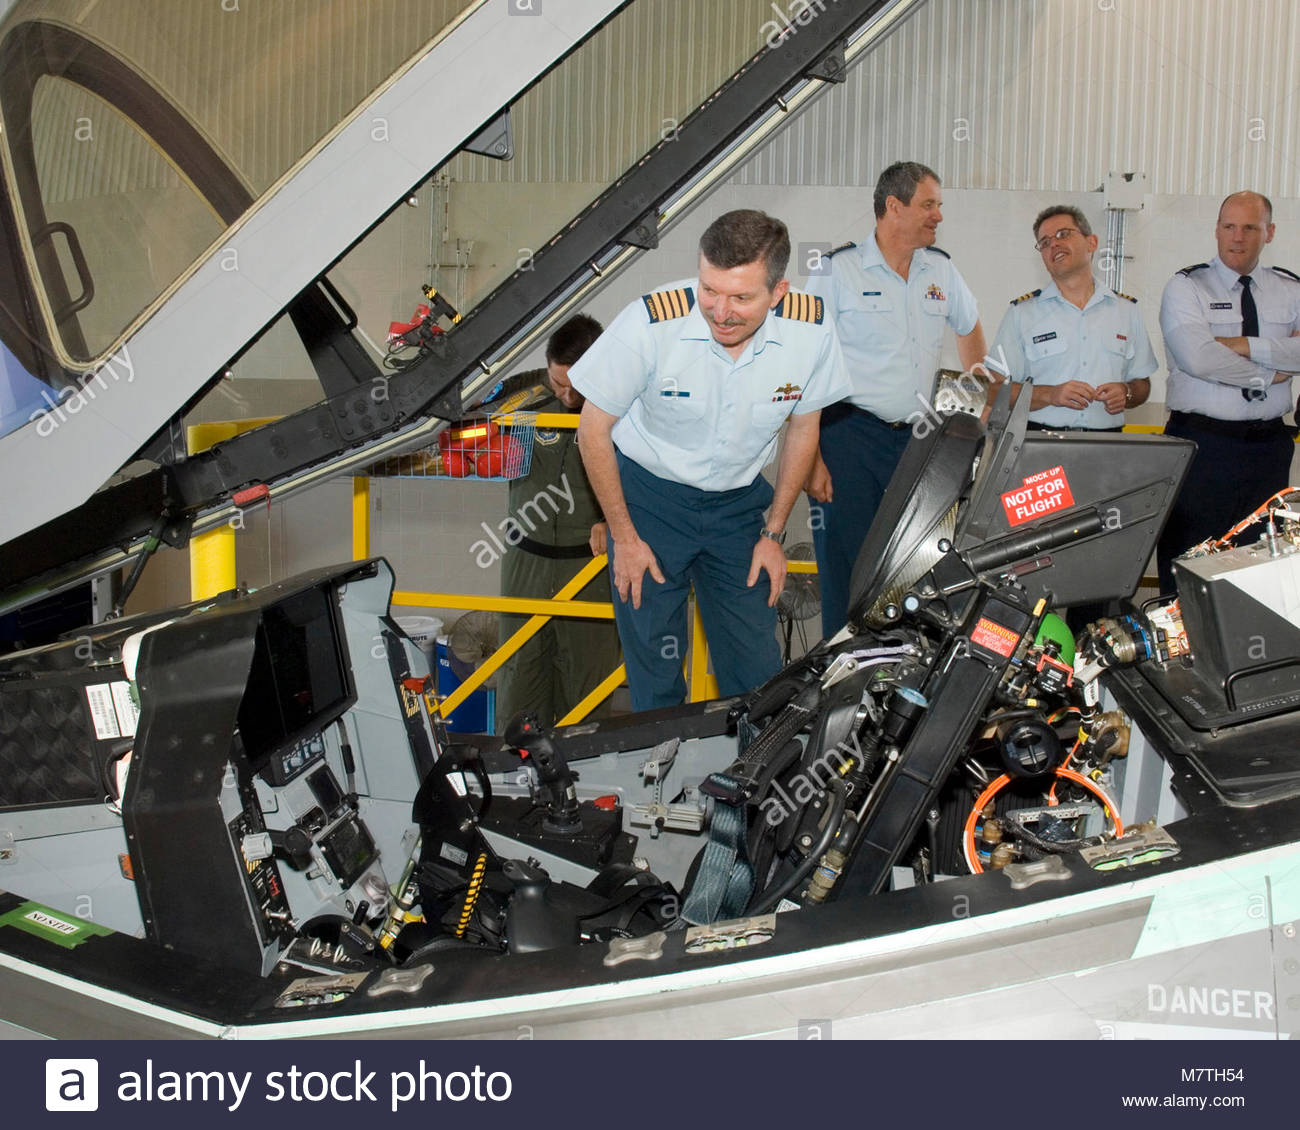 CAS Visit. Colonel Dave C. Burt, Director Air Requirement, poses behind the cockpit of the new F-35 Joint Strike - Stock Image